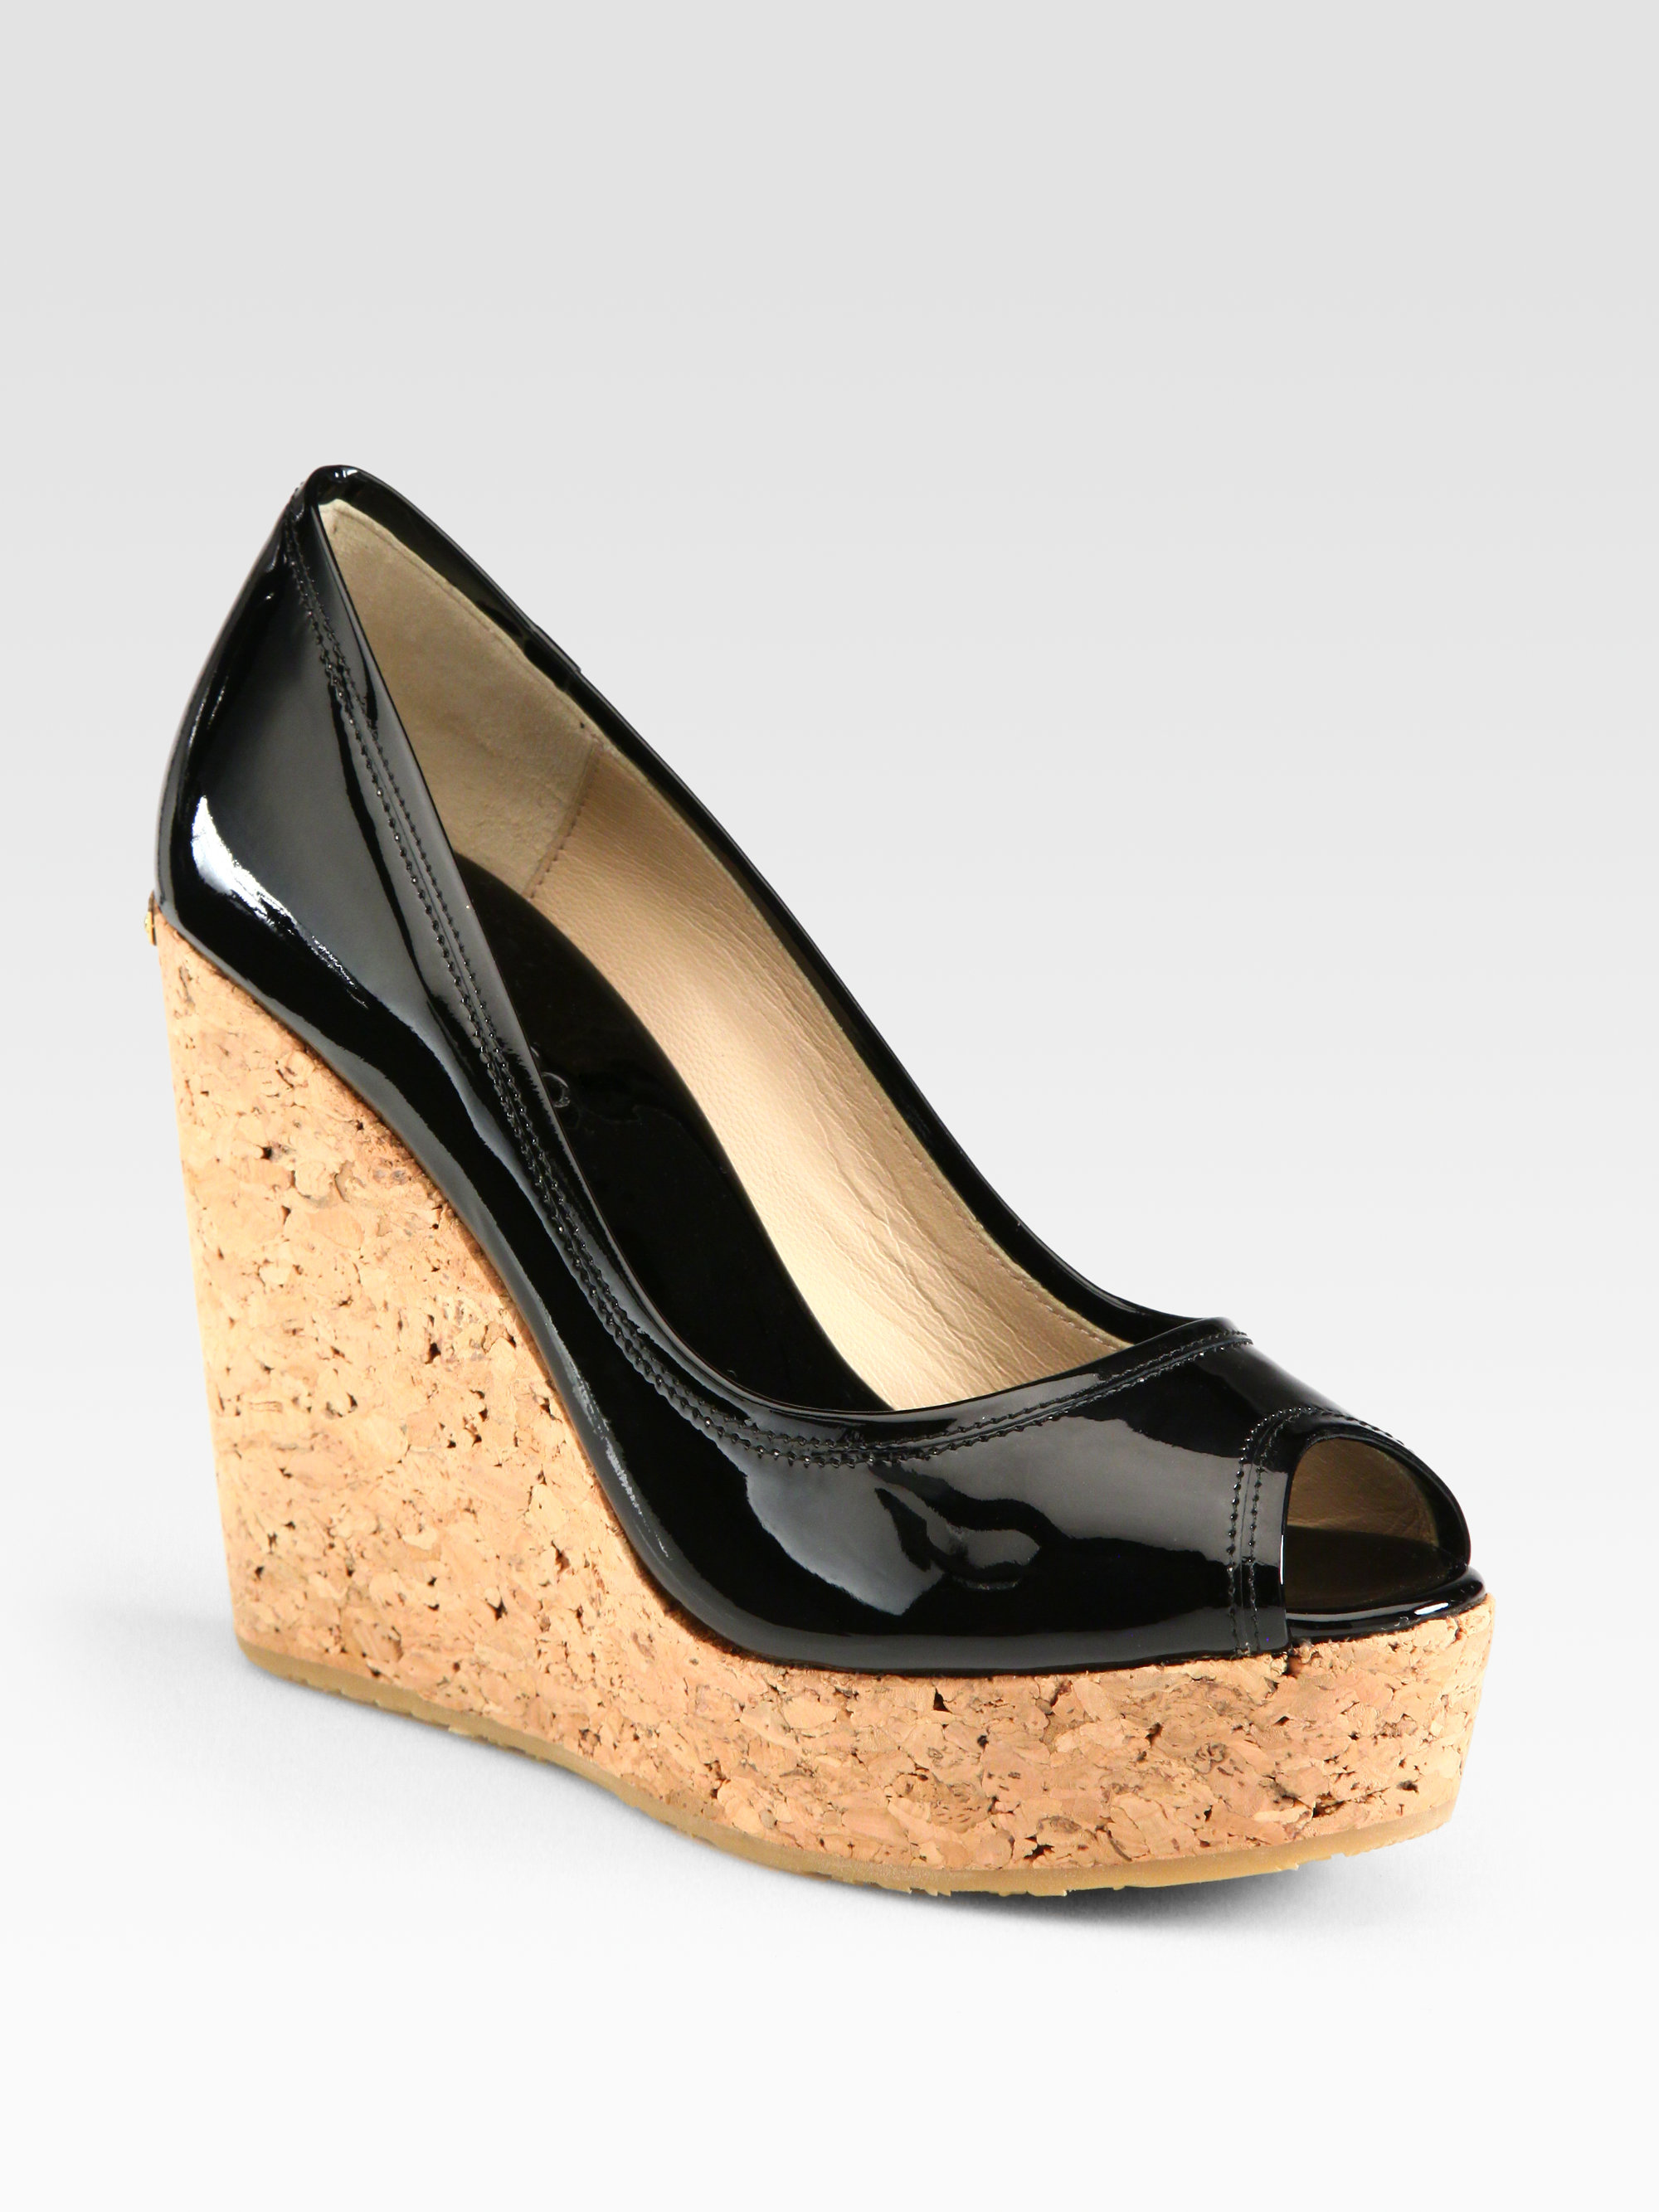 5cb48ce5f67a ... sale lyst jimmy choo papina patent leather wedge sandals in black 63f3d  ac35b